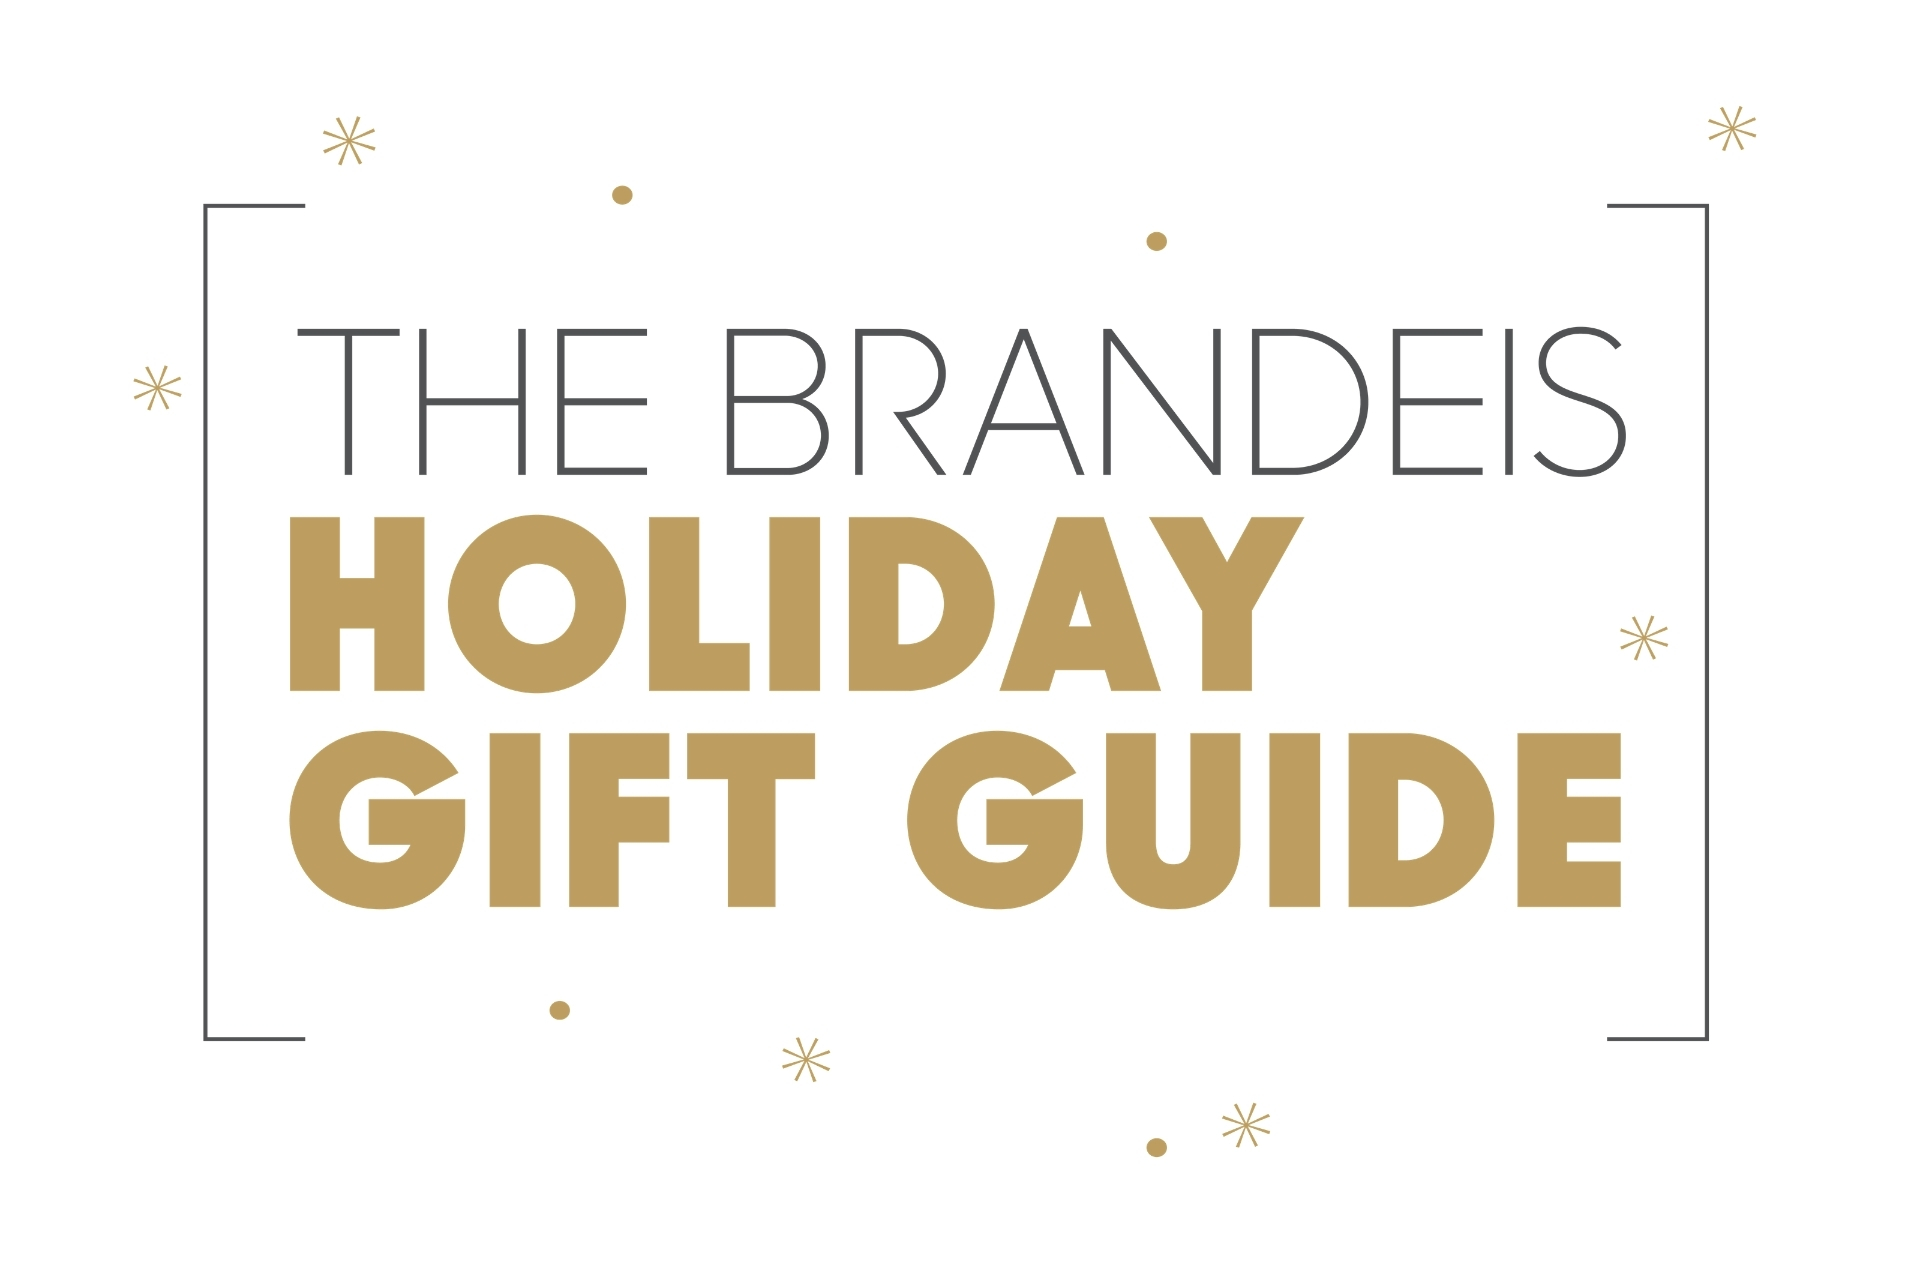 brandeis holiday gift guide with snowflakes and dots